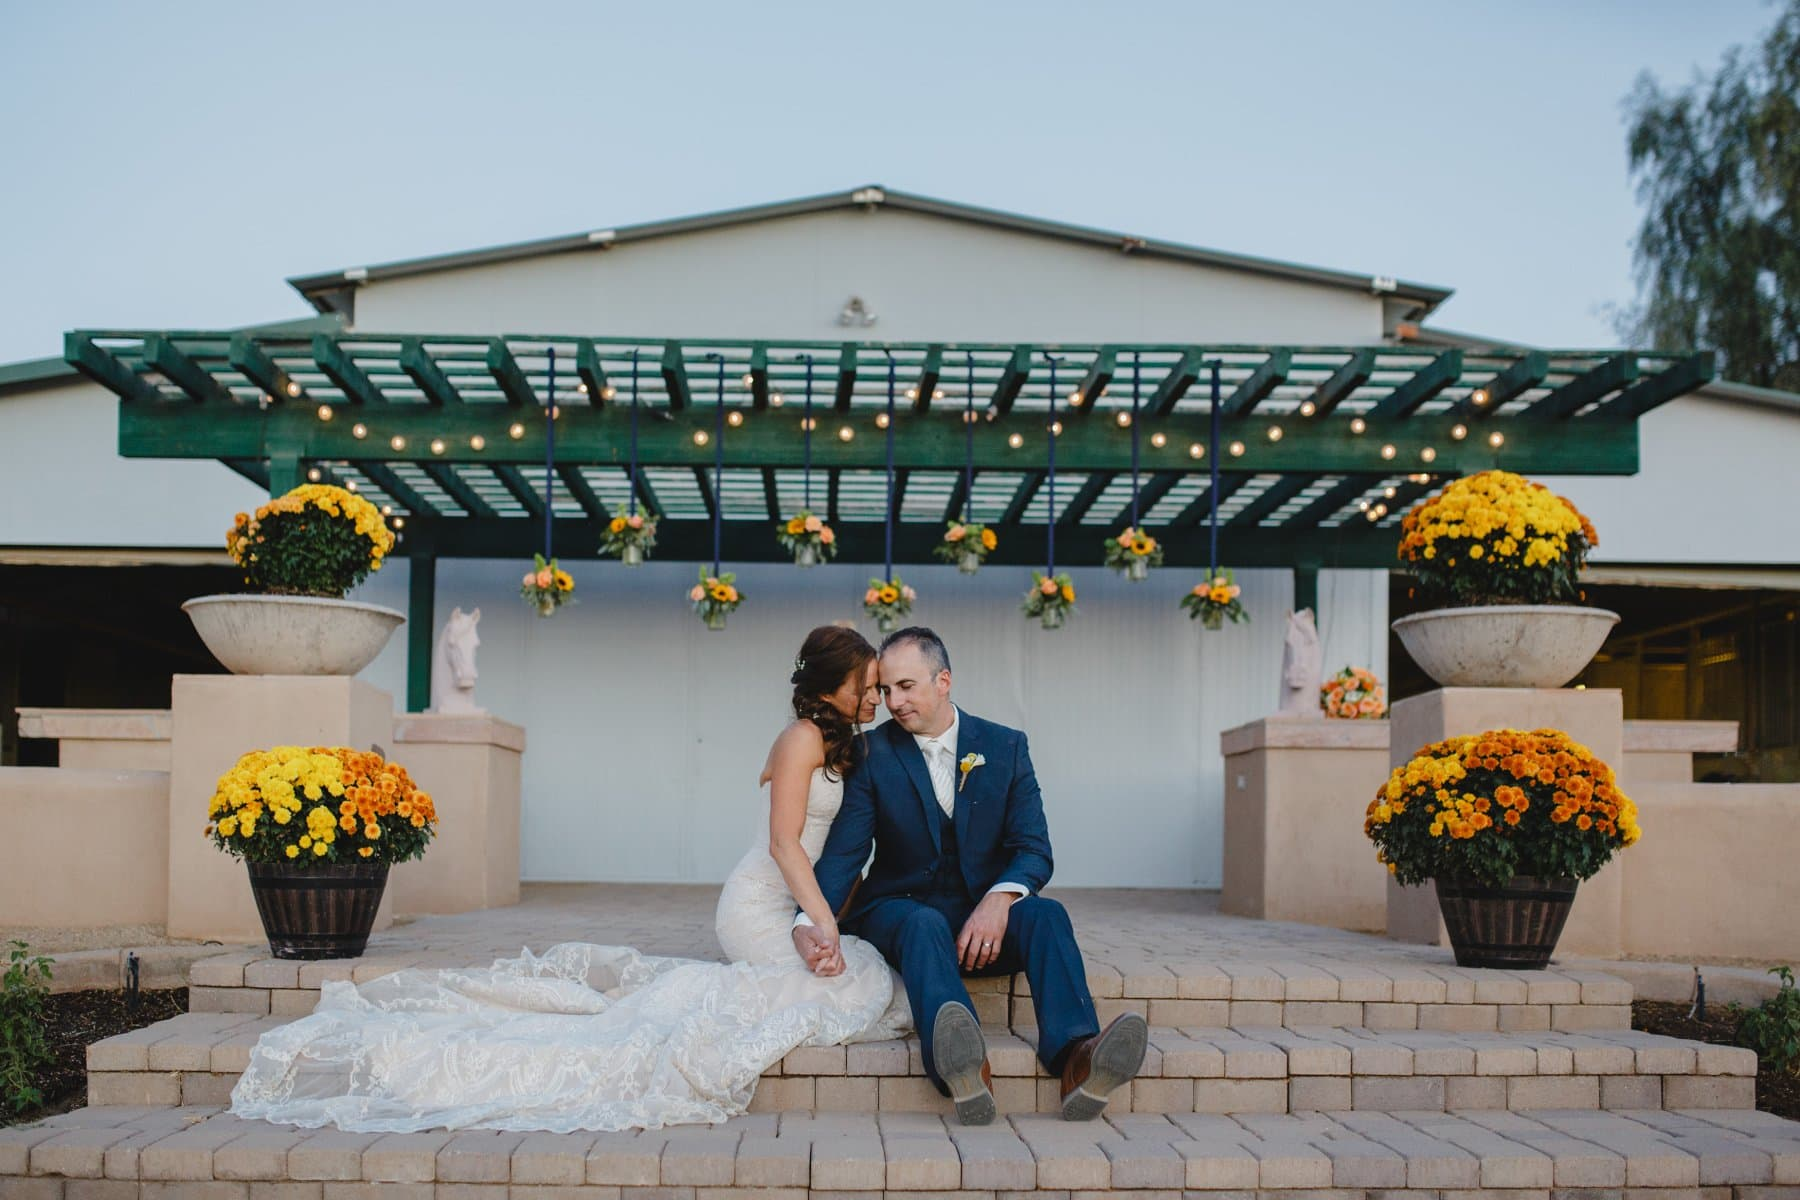 wedding at a Cave Creek horse barn in Arizona